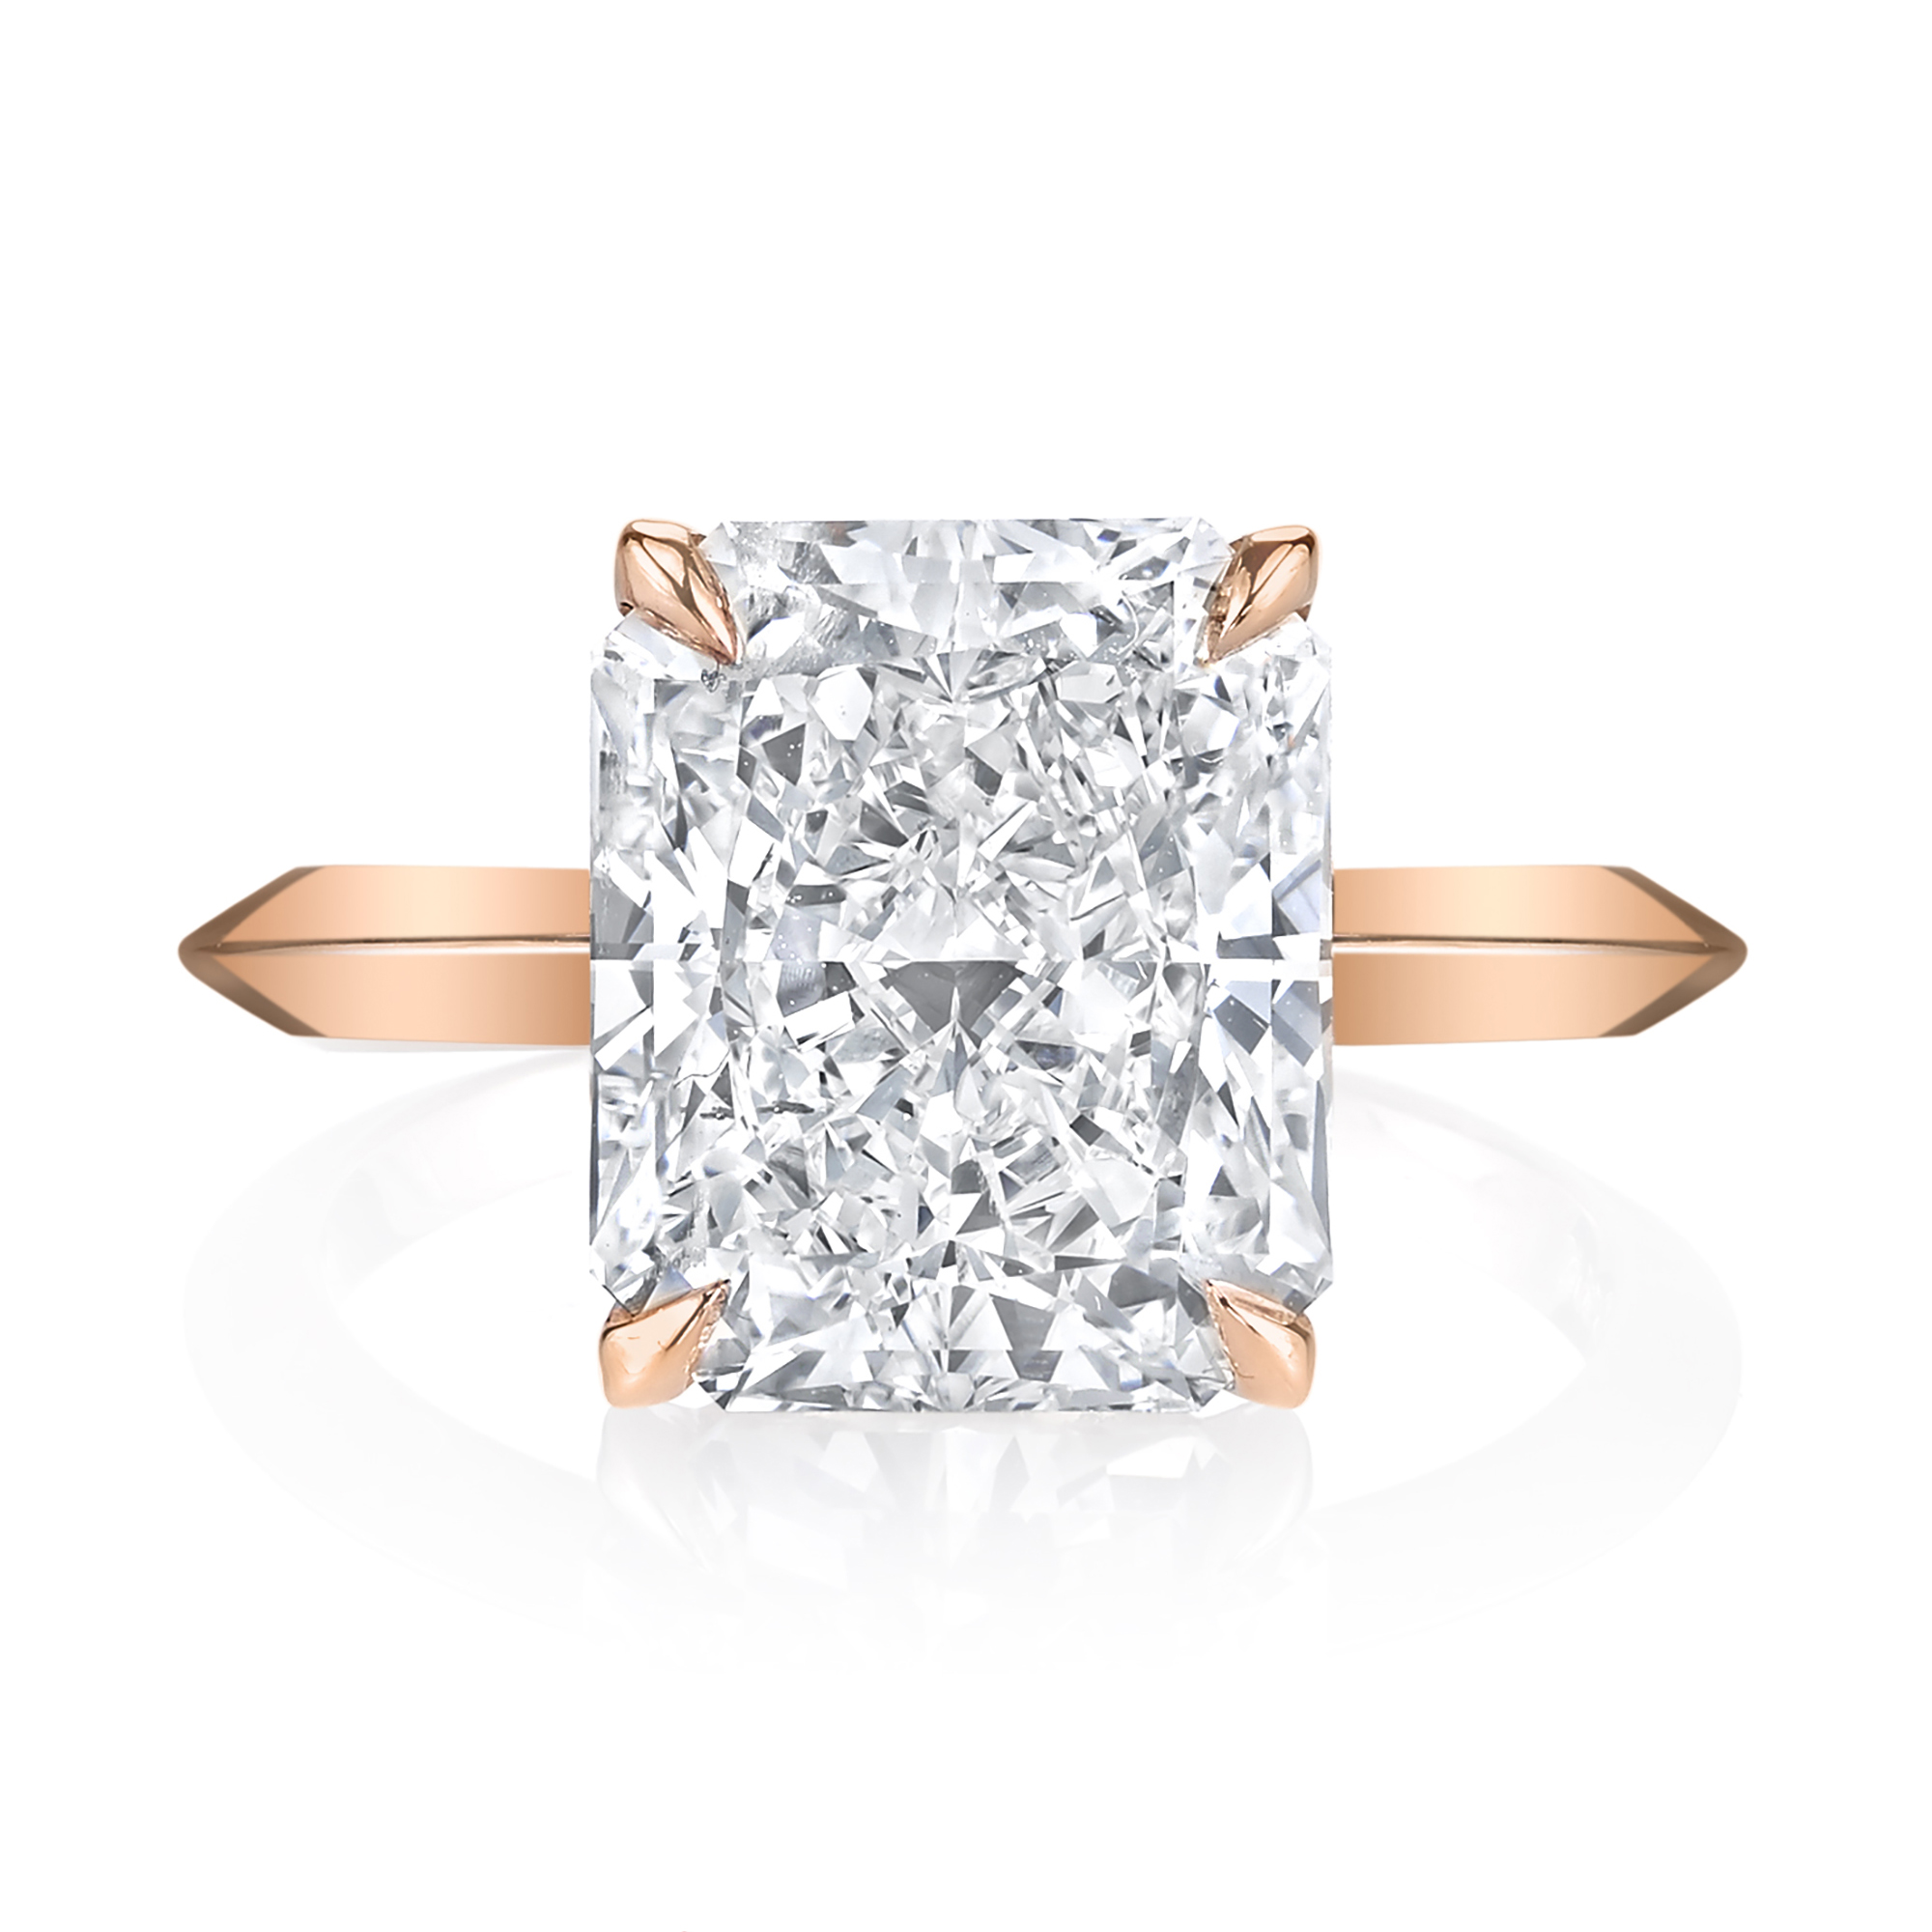 Custom 4ct. Radiant Cut Rose Gold Engagement Ring